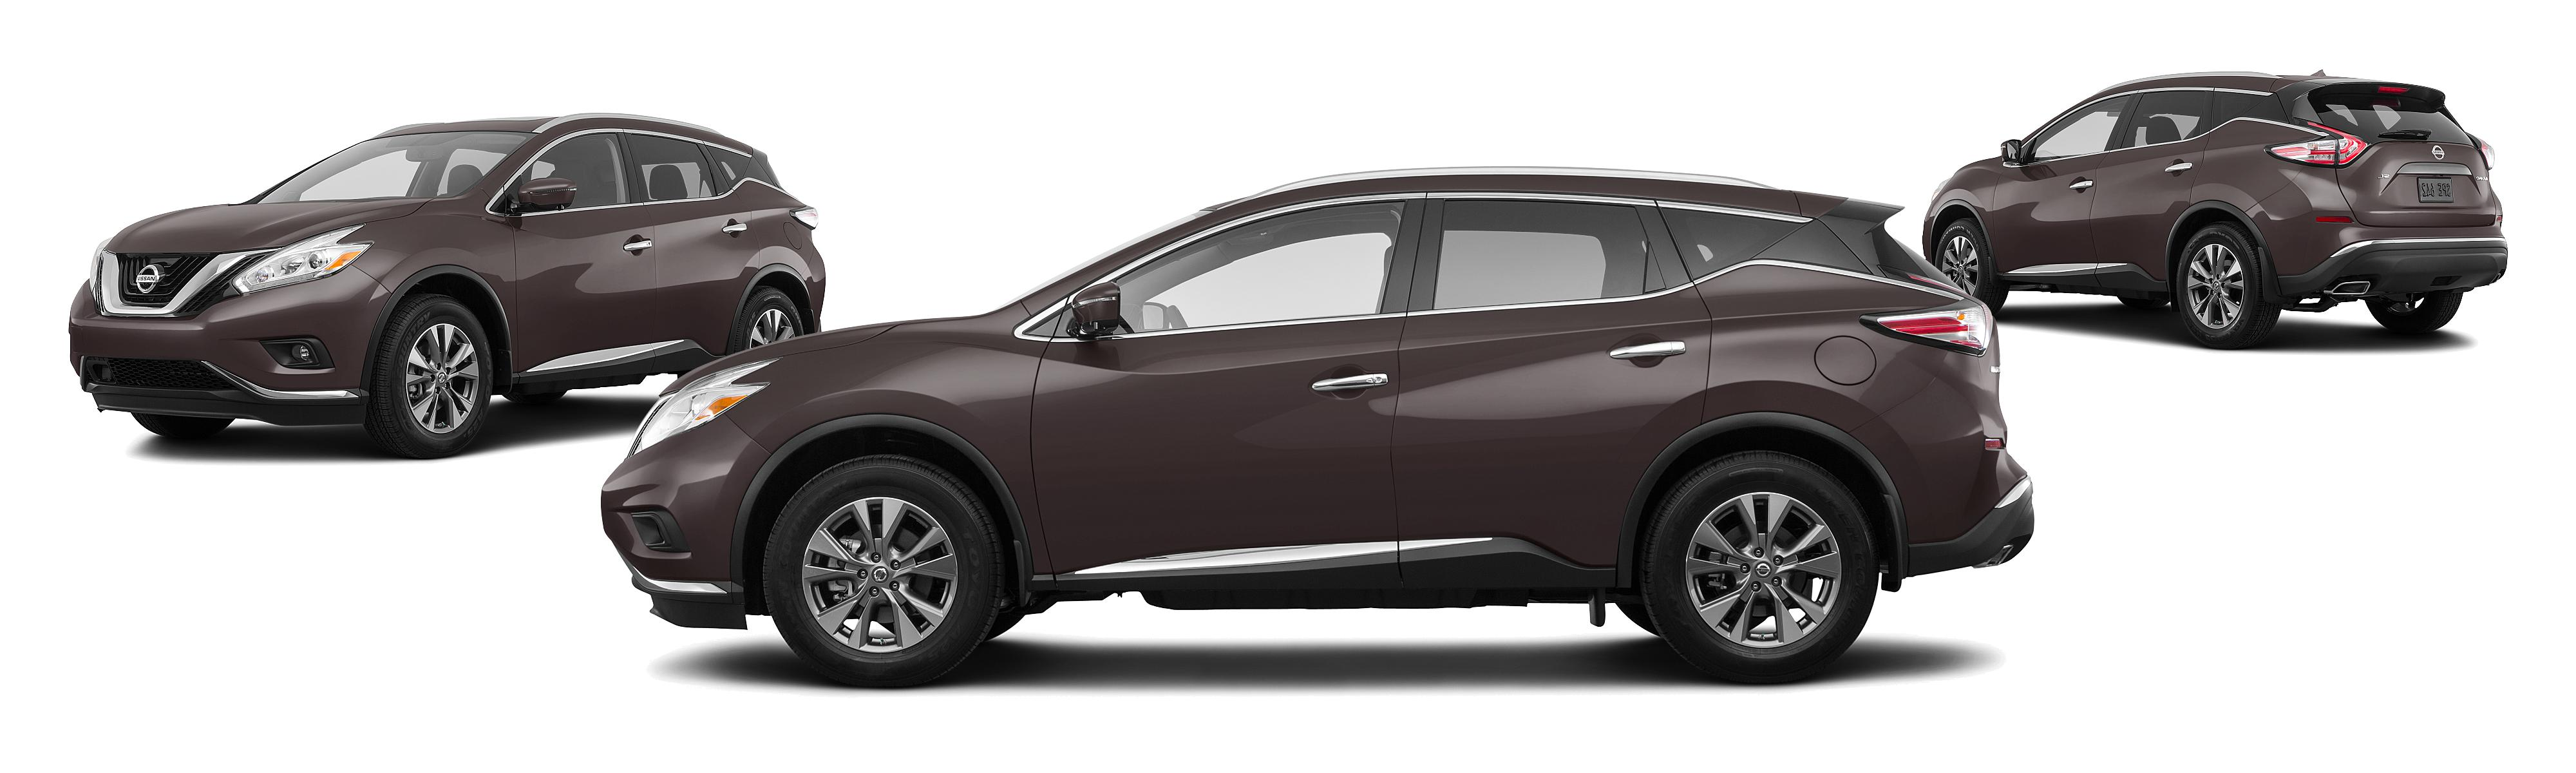 article seo car price reviews murano nissan review from japan